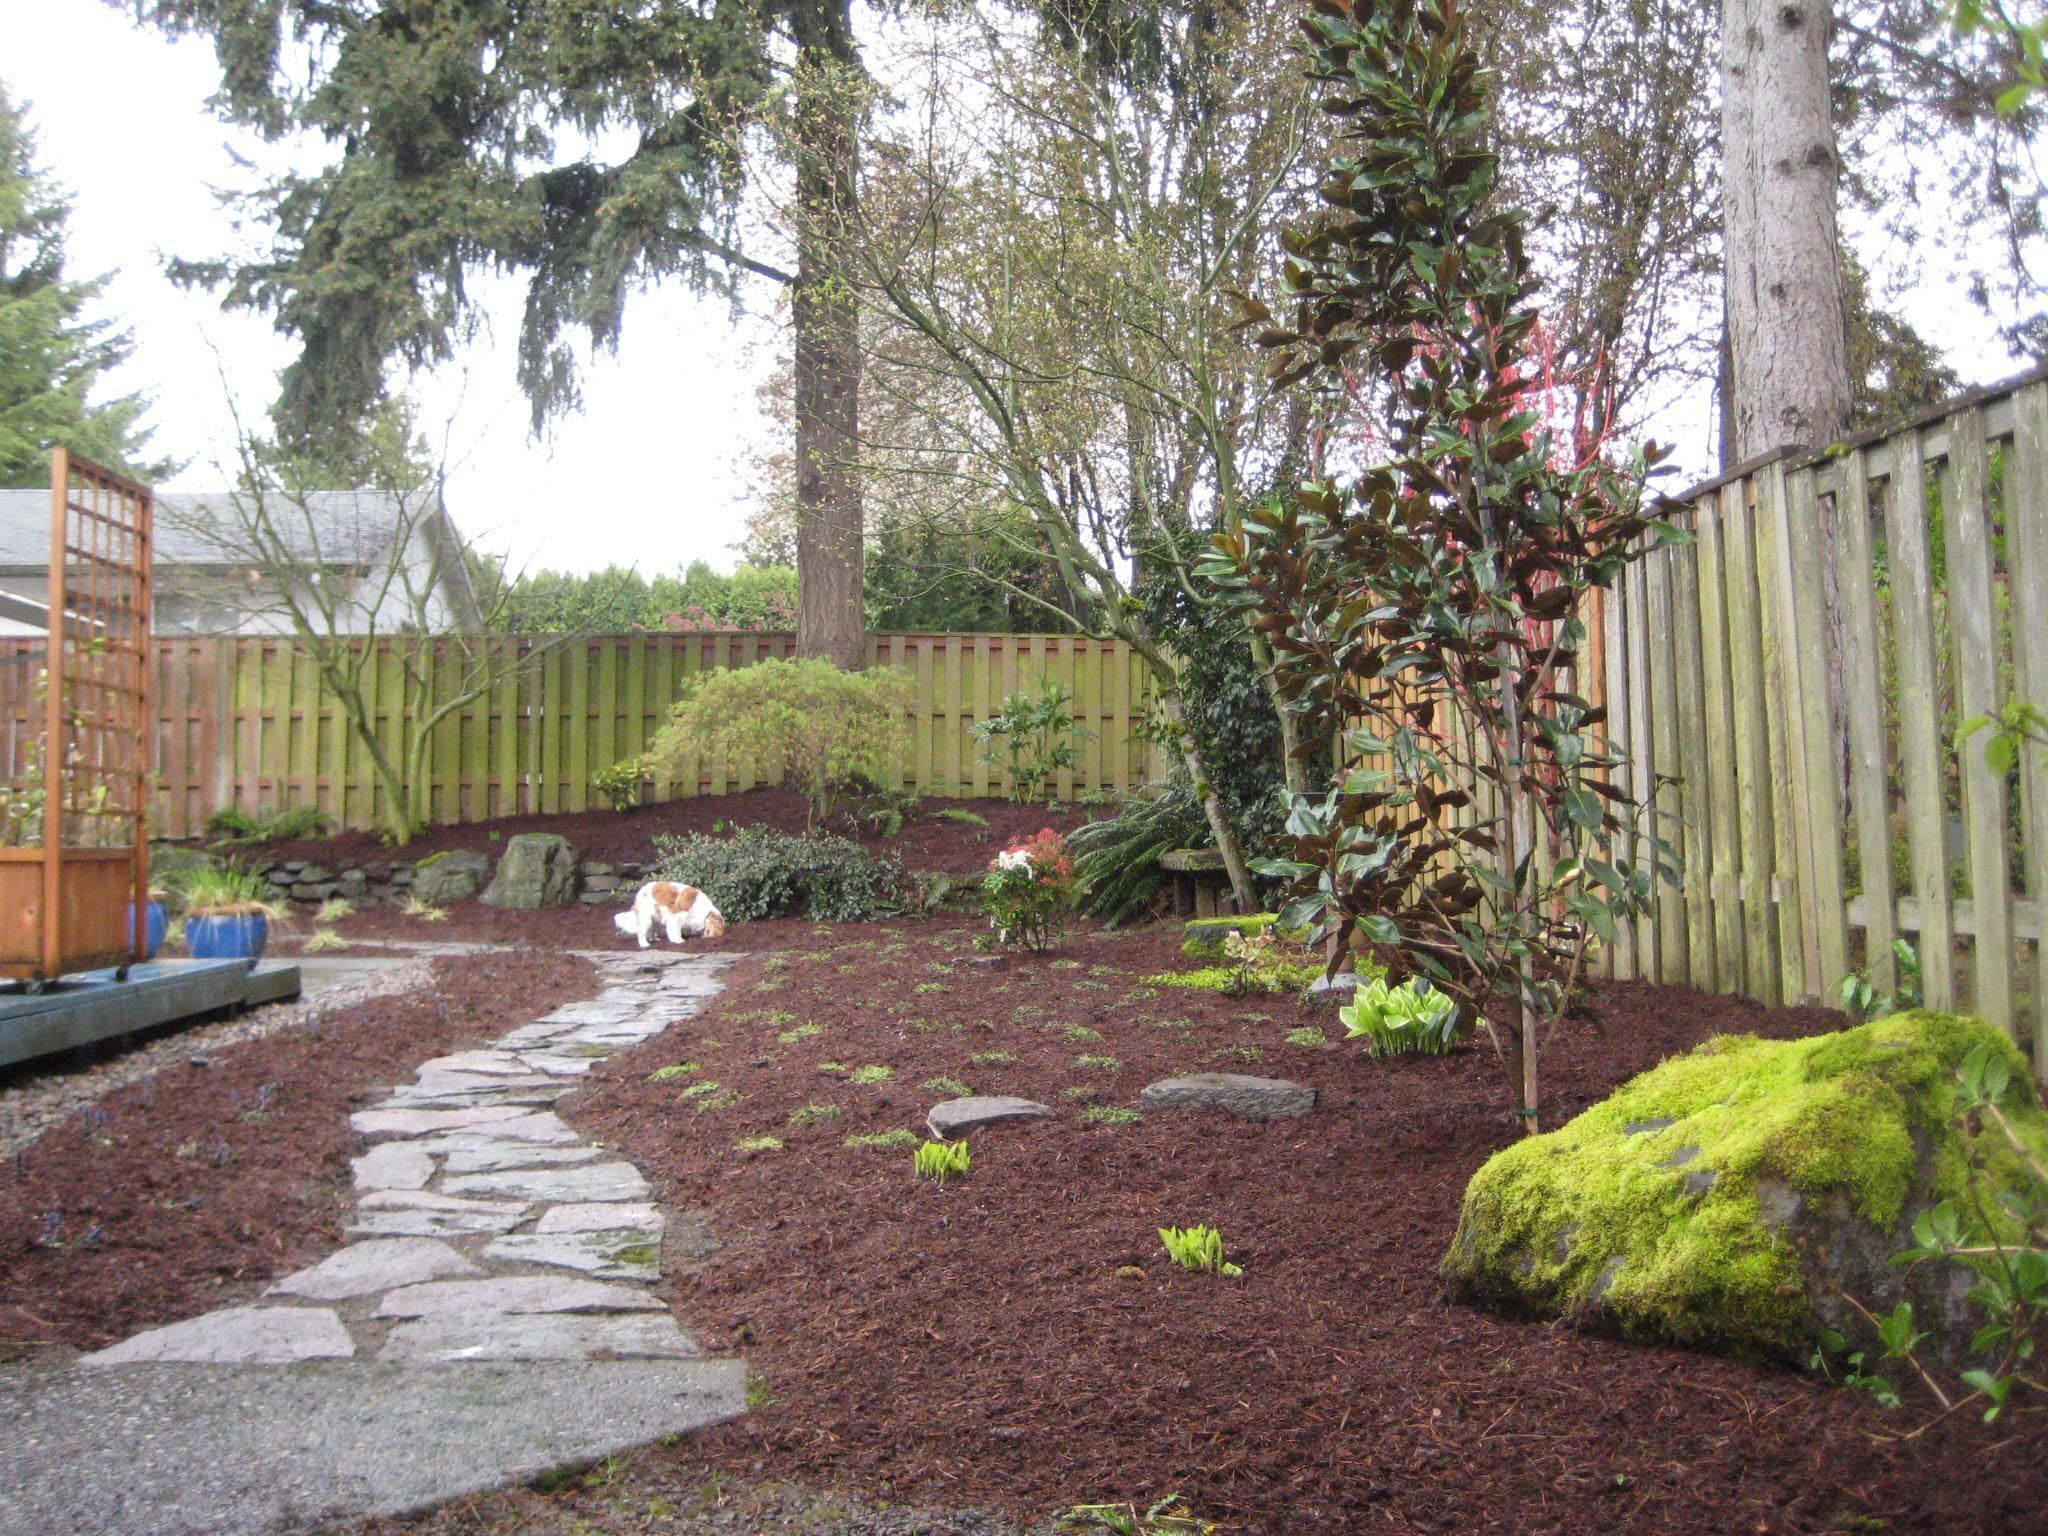 Landscaping Ideas For Small Yards With Dogs Garden Ideas throughout 13 Genius Designs of How to Make Landscaping Ideas For Backyard With Dogs